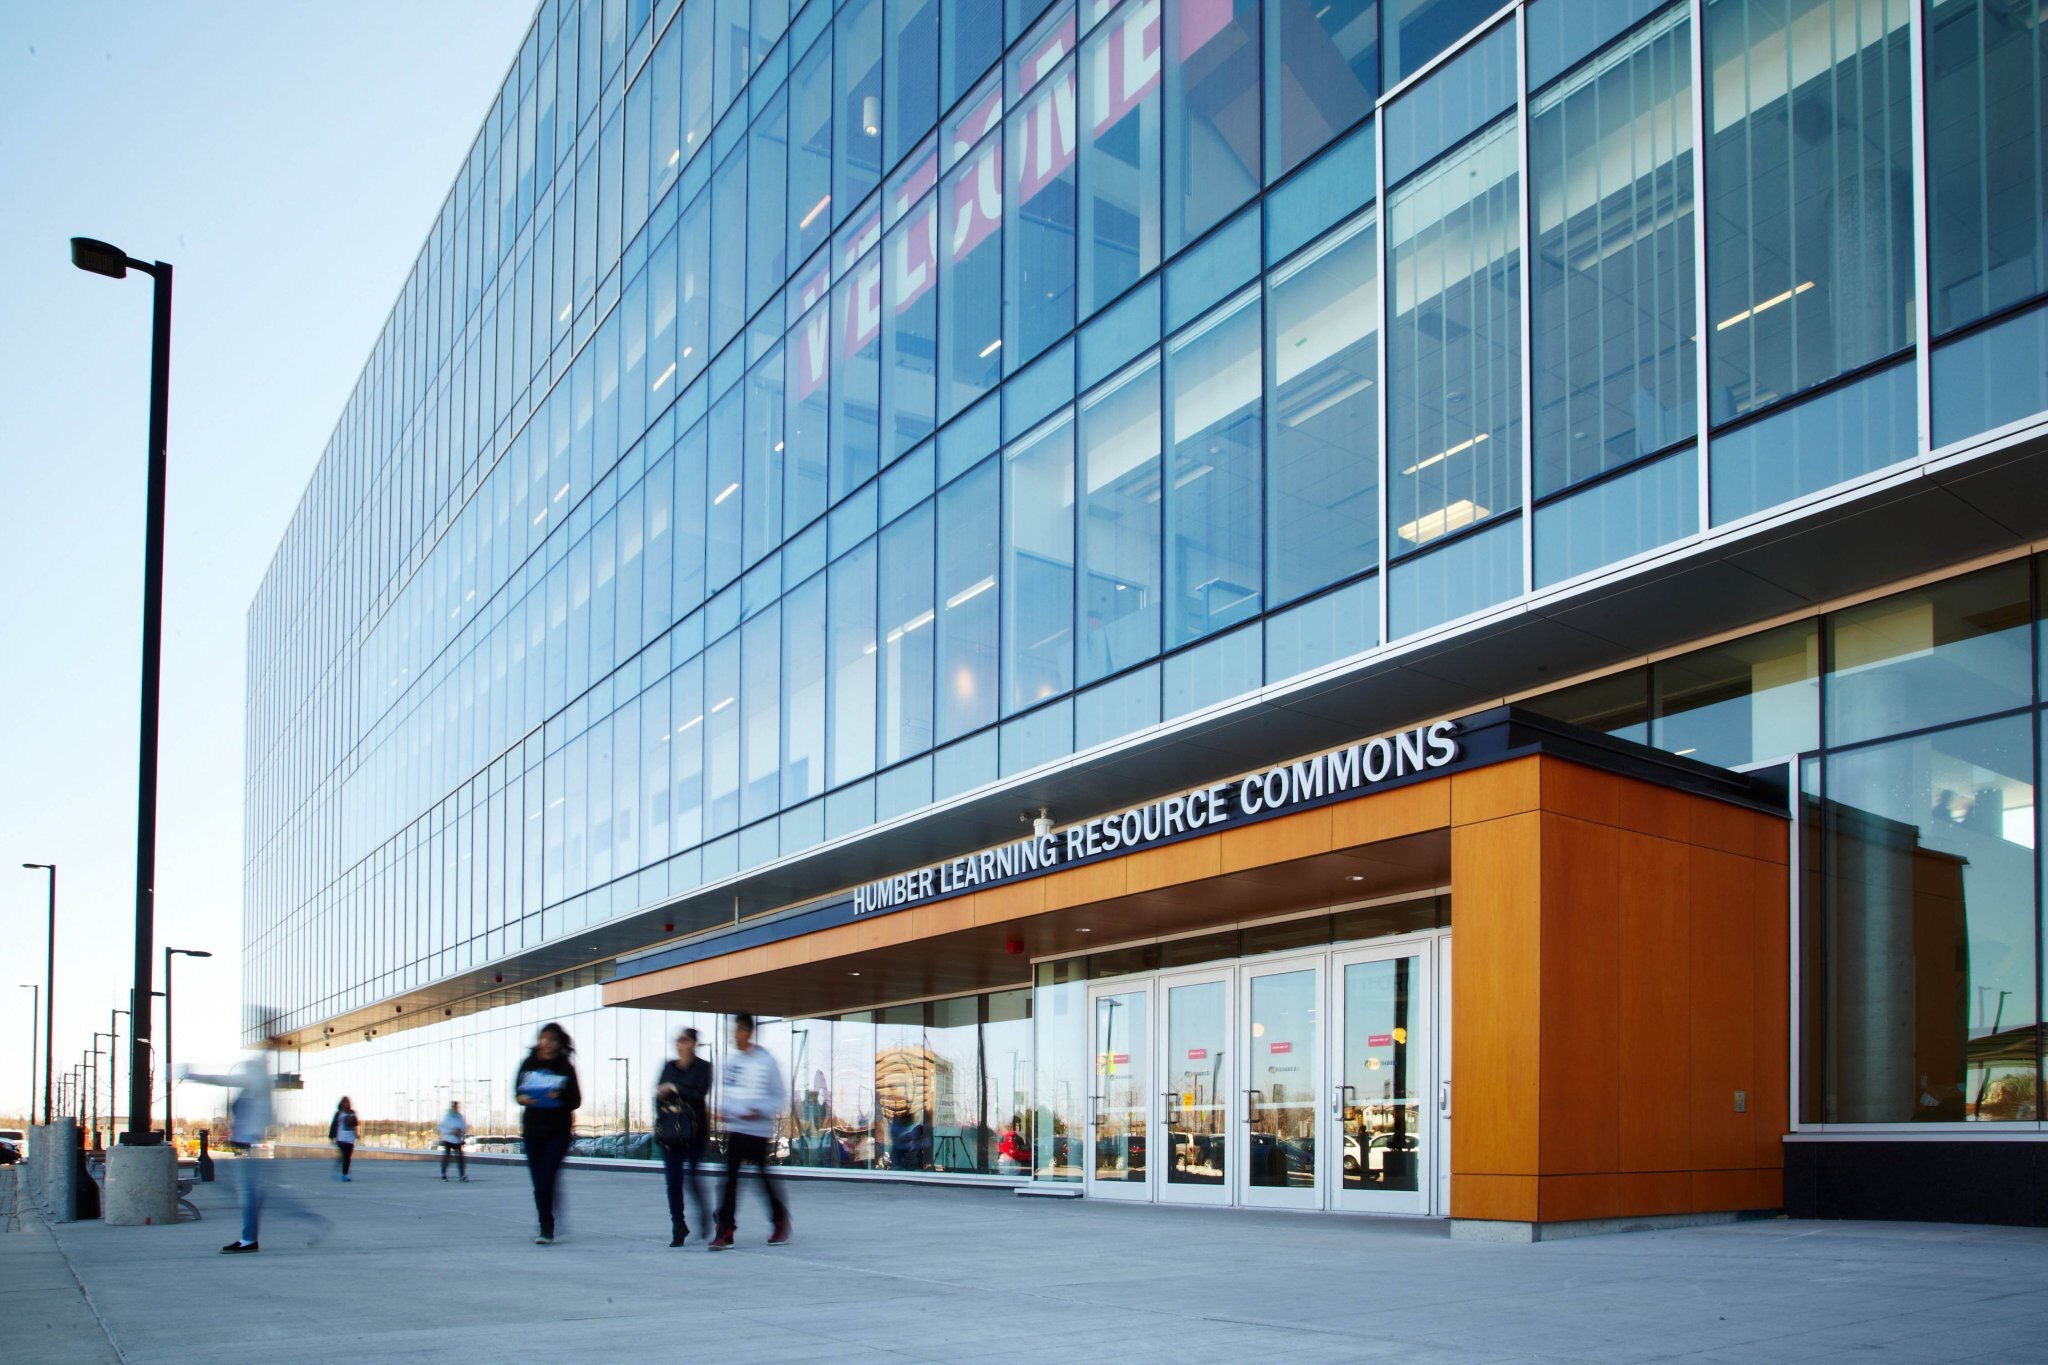 Humber College Learning Resource Commons building